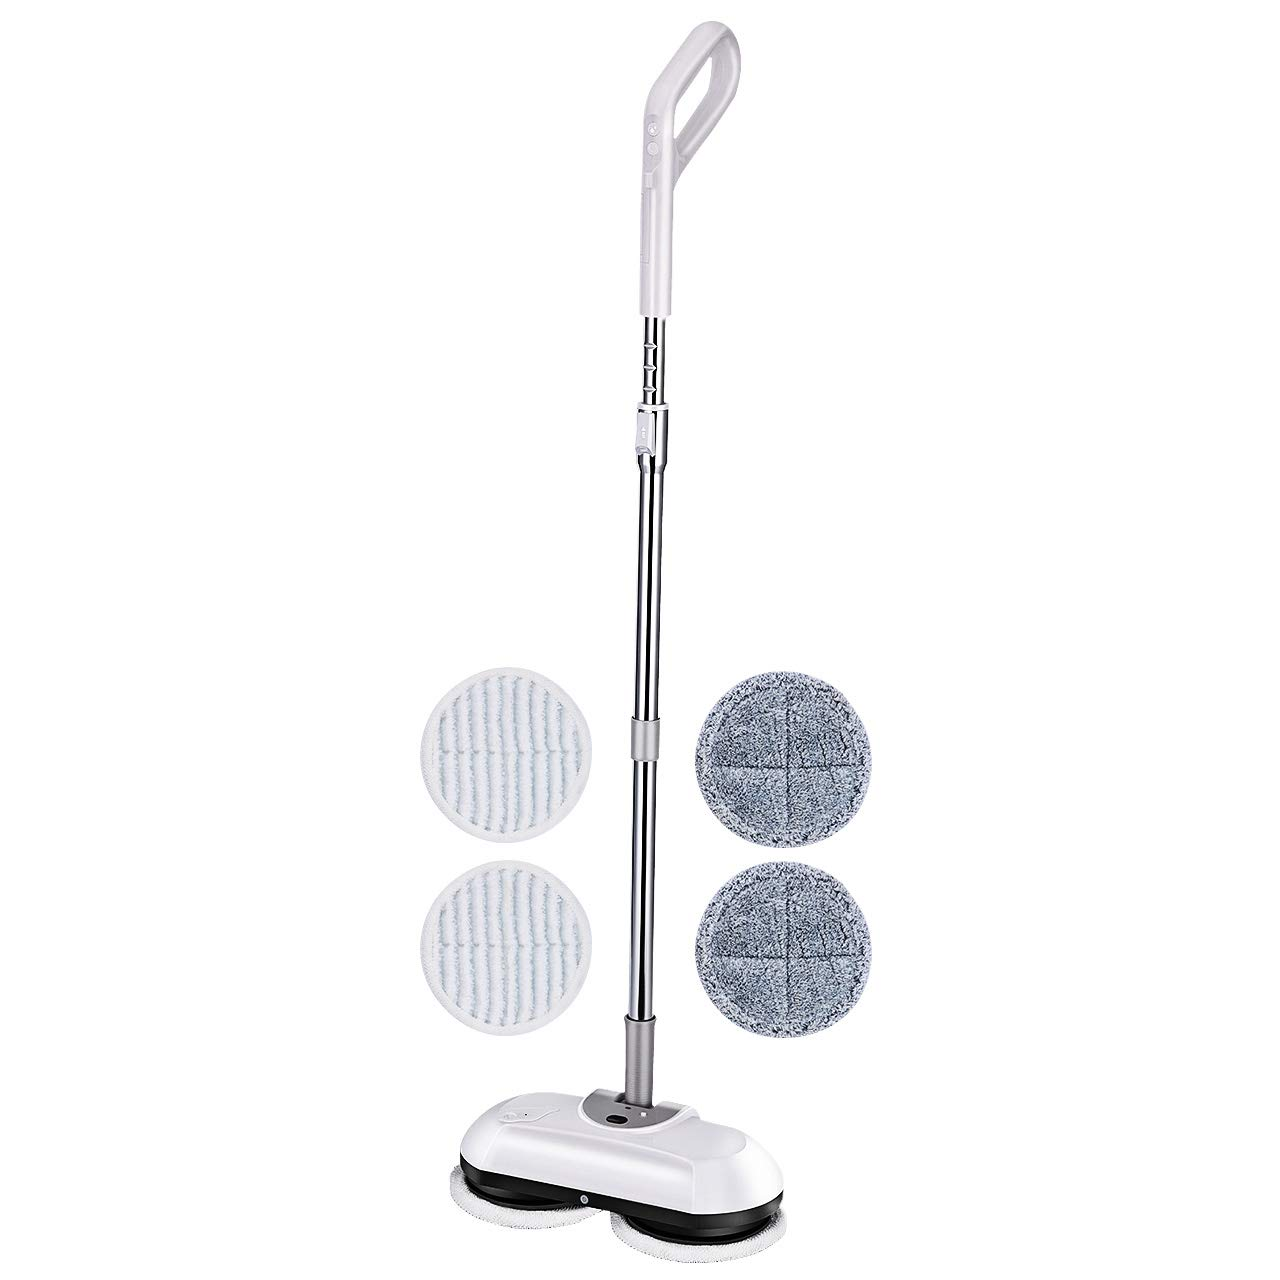 Homitt Upgraded Electric Spin Mop Floor Scrubber, Cordless Power Spray Floor Mop with Adjustable Handle and 4 Replaceable Microfiber Mop Pads for Cleaning Hardwood Floor and Tile by Homitt